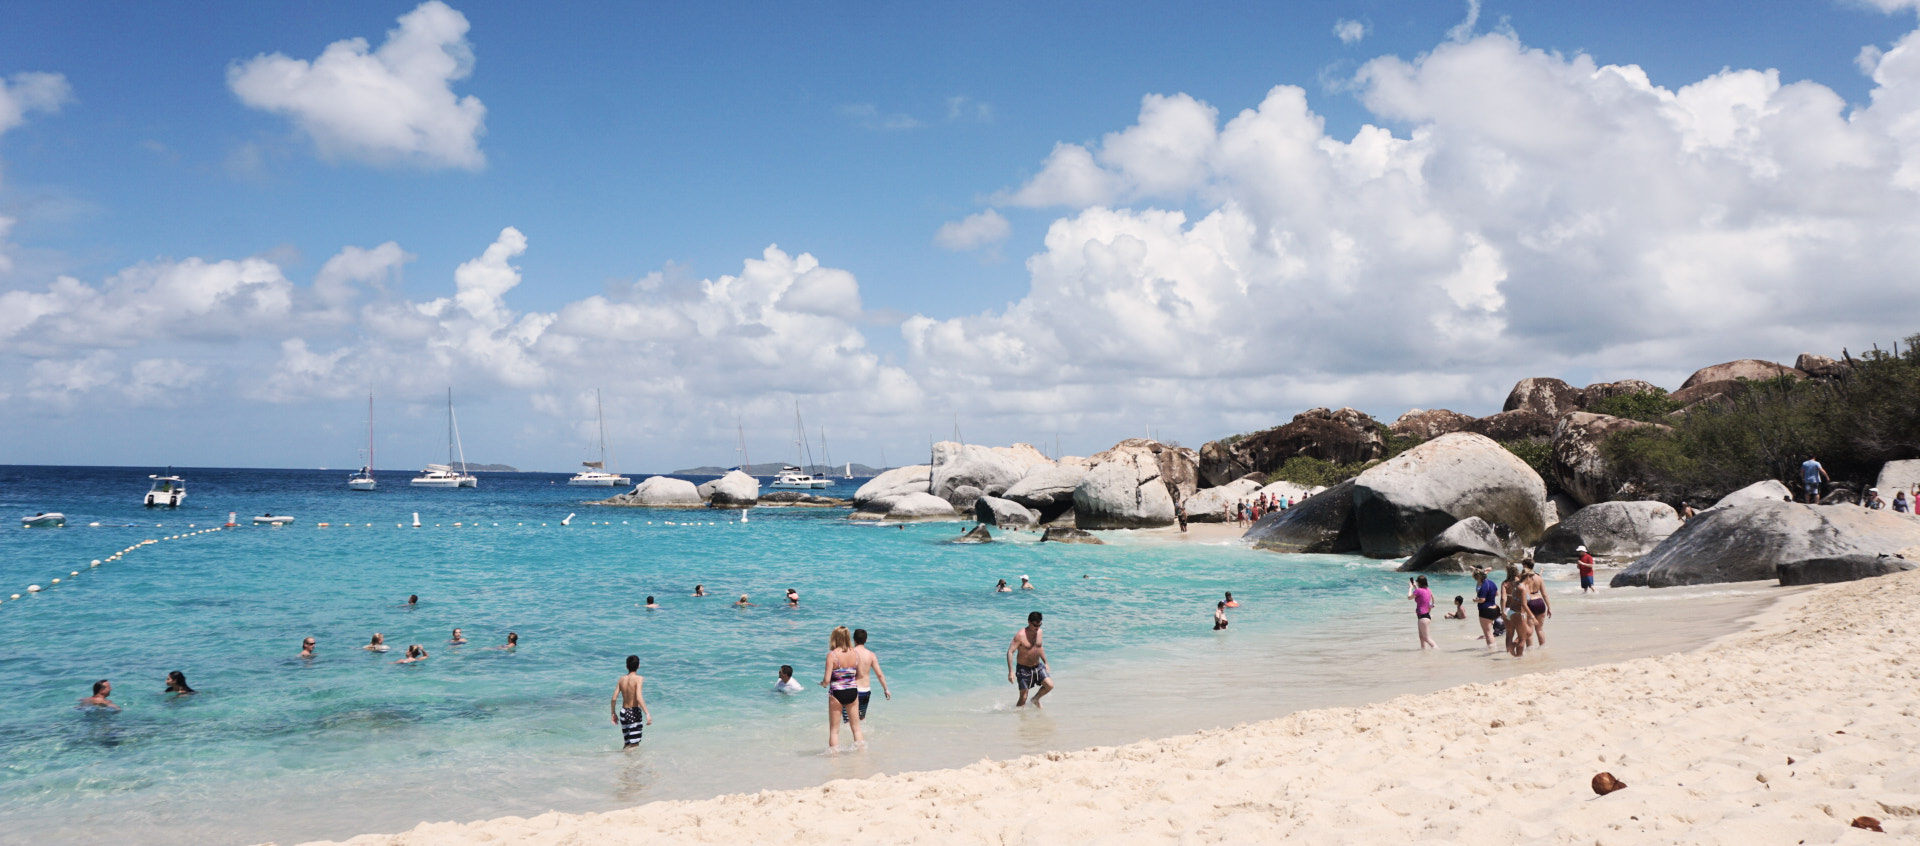 Devil's Bay at Virgin Gorda